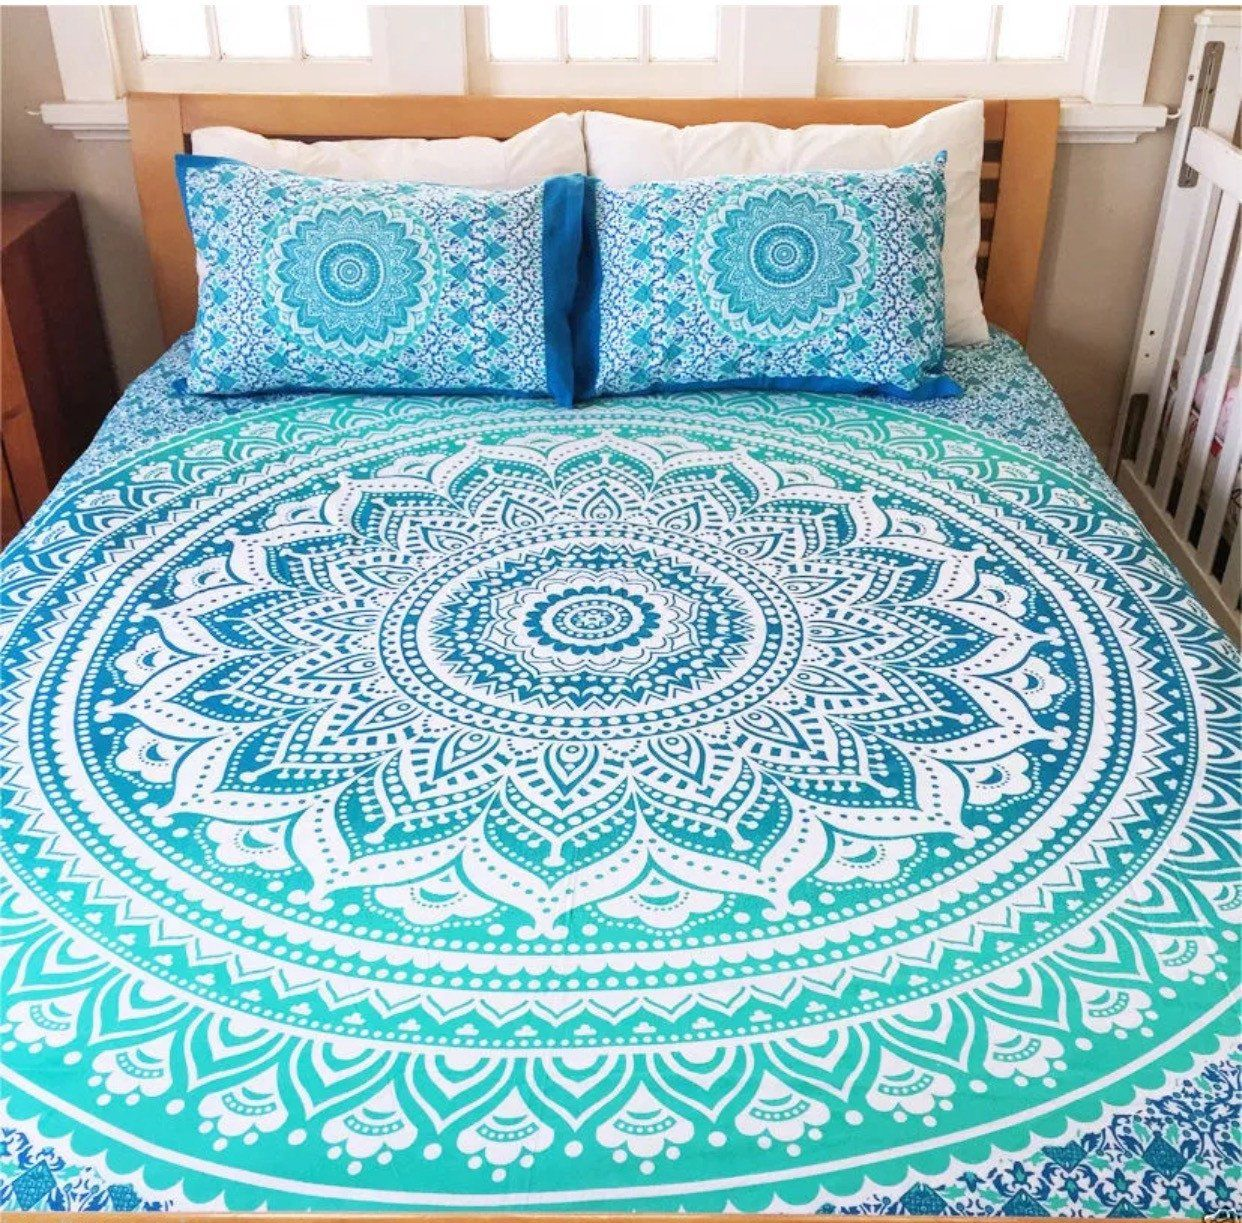 Outfitter Comforter Ombre Gold Mandala Reversible Queen Size Donna Duvet Cover